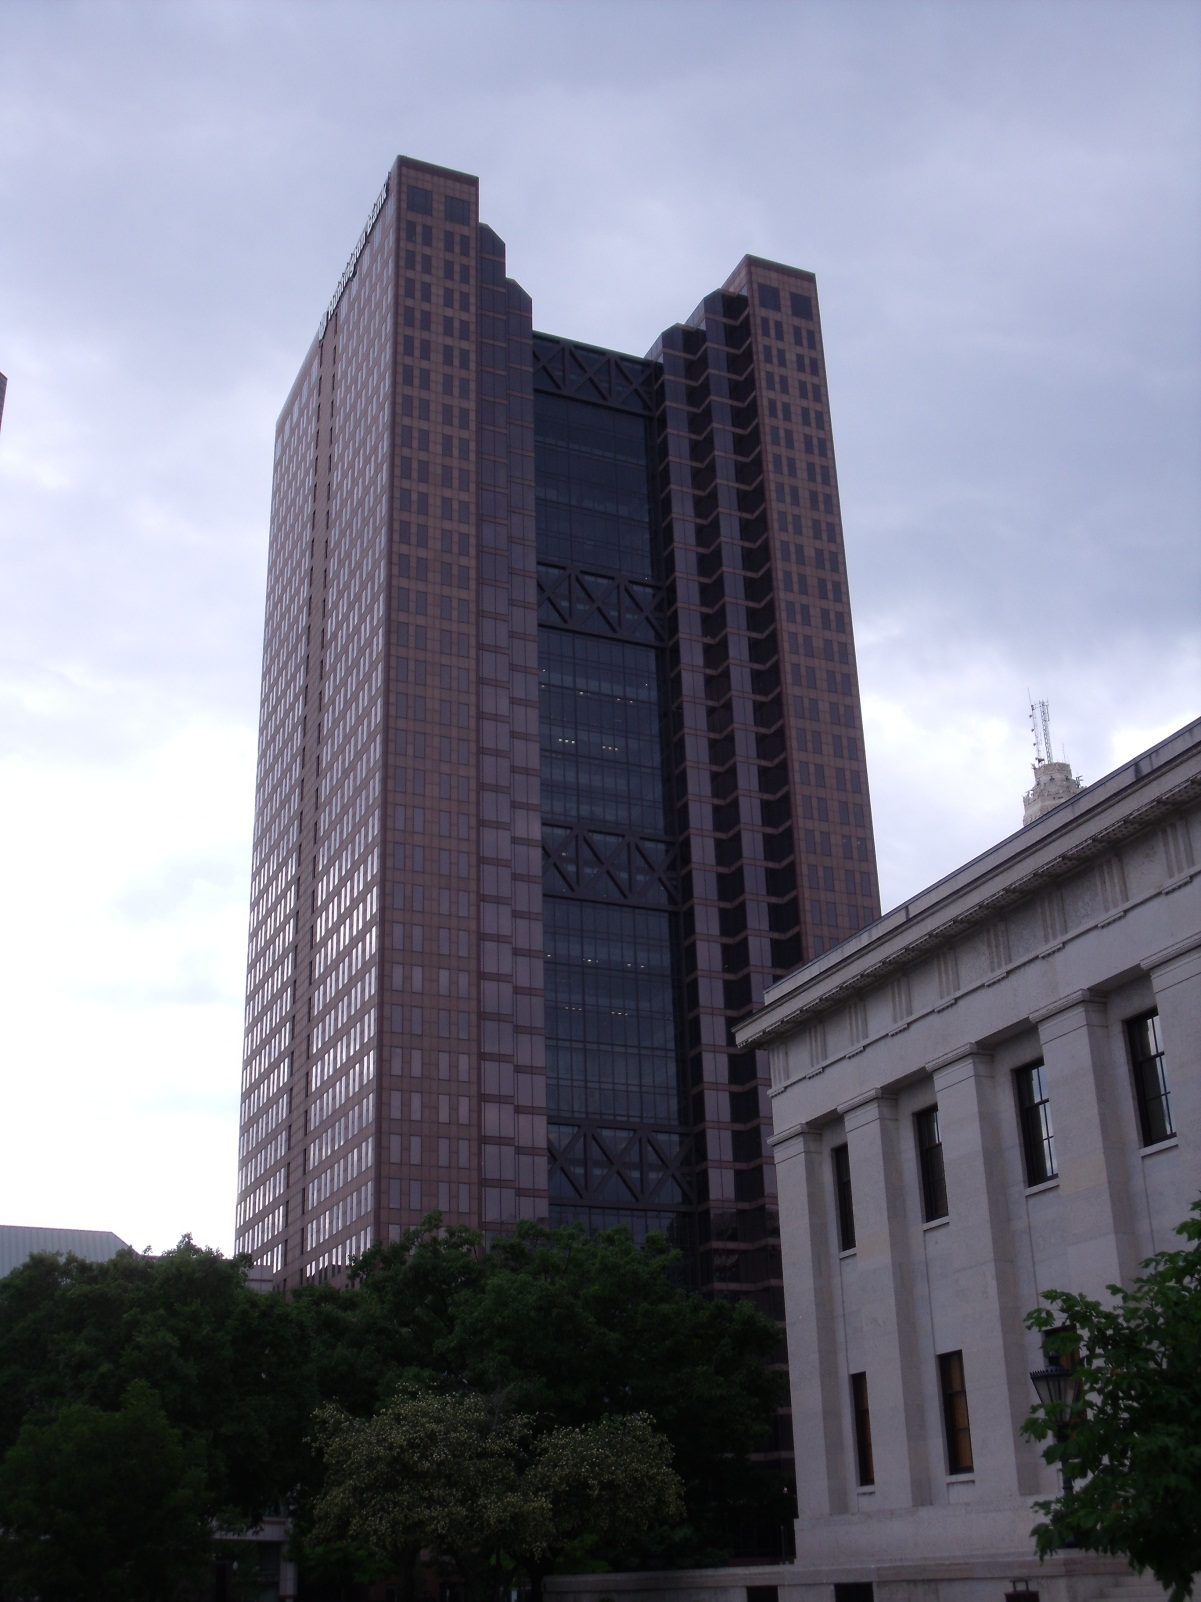 http://upload.wikimedia.org/wikipedia/commons/d/dd/Huntington_Bank_Building_Columbus_Ohio.JPG